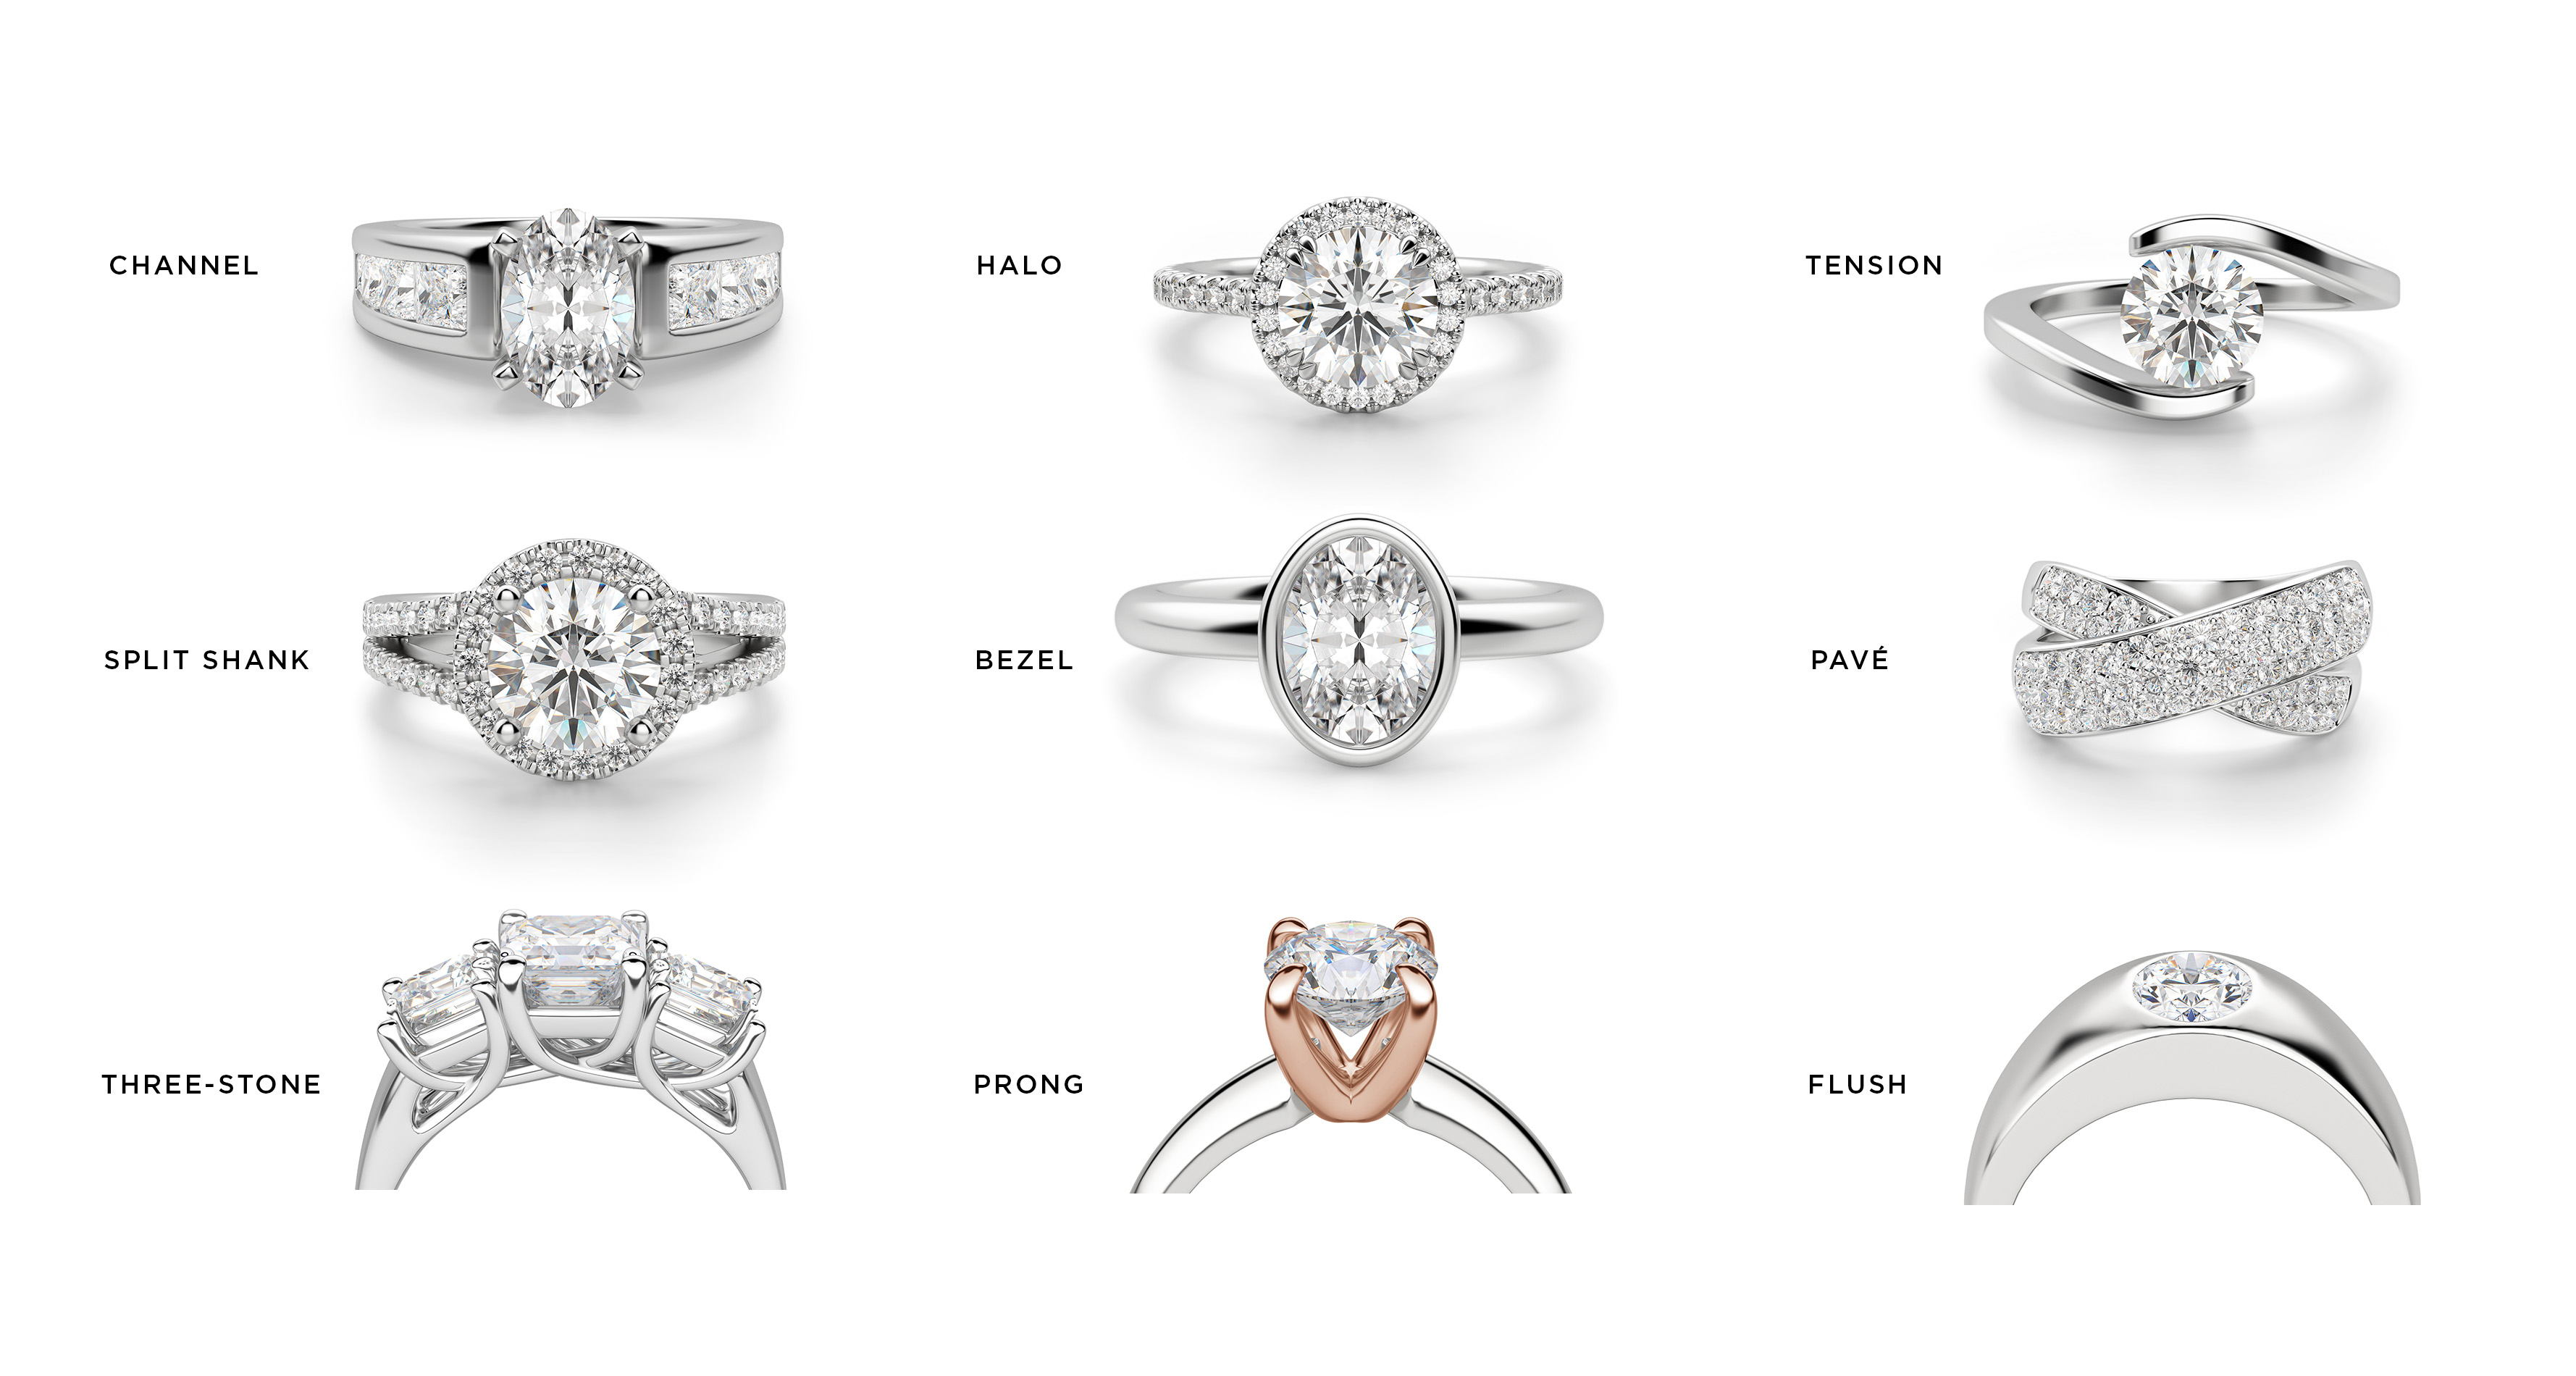 Examples of different engagement ring setting options.